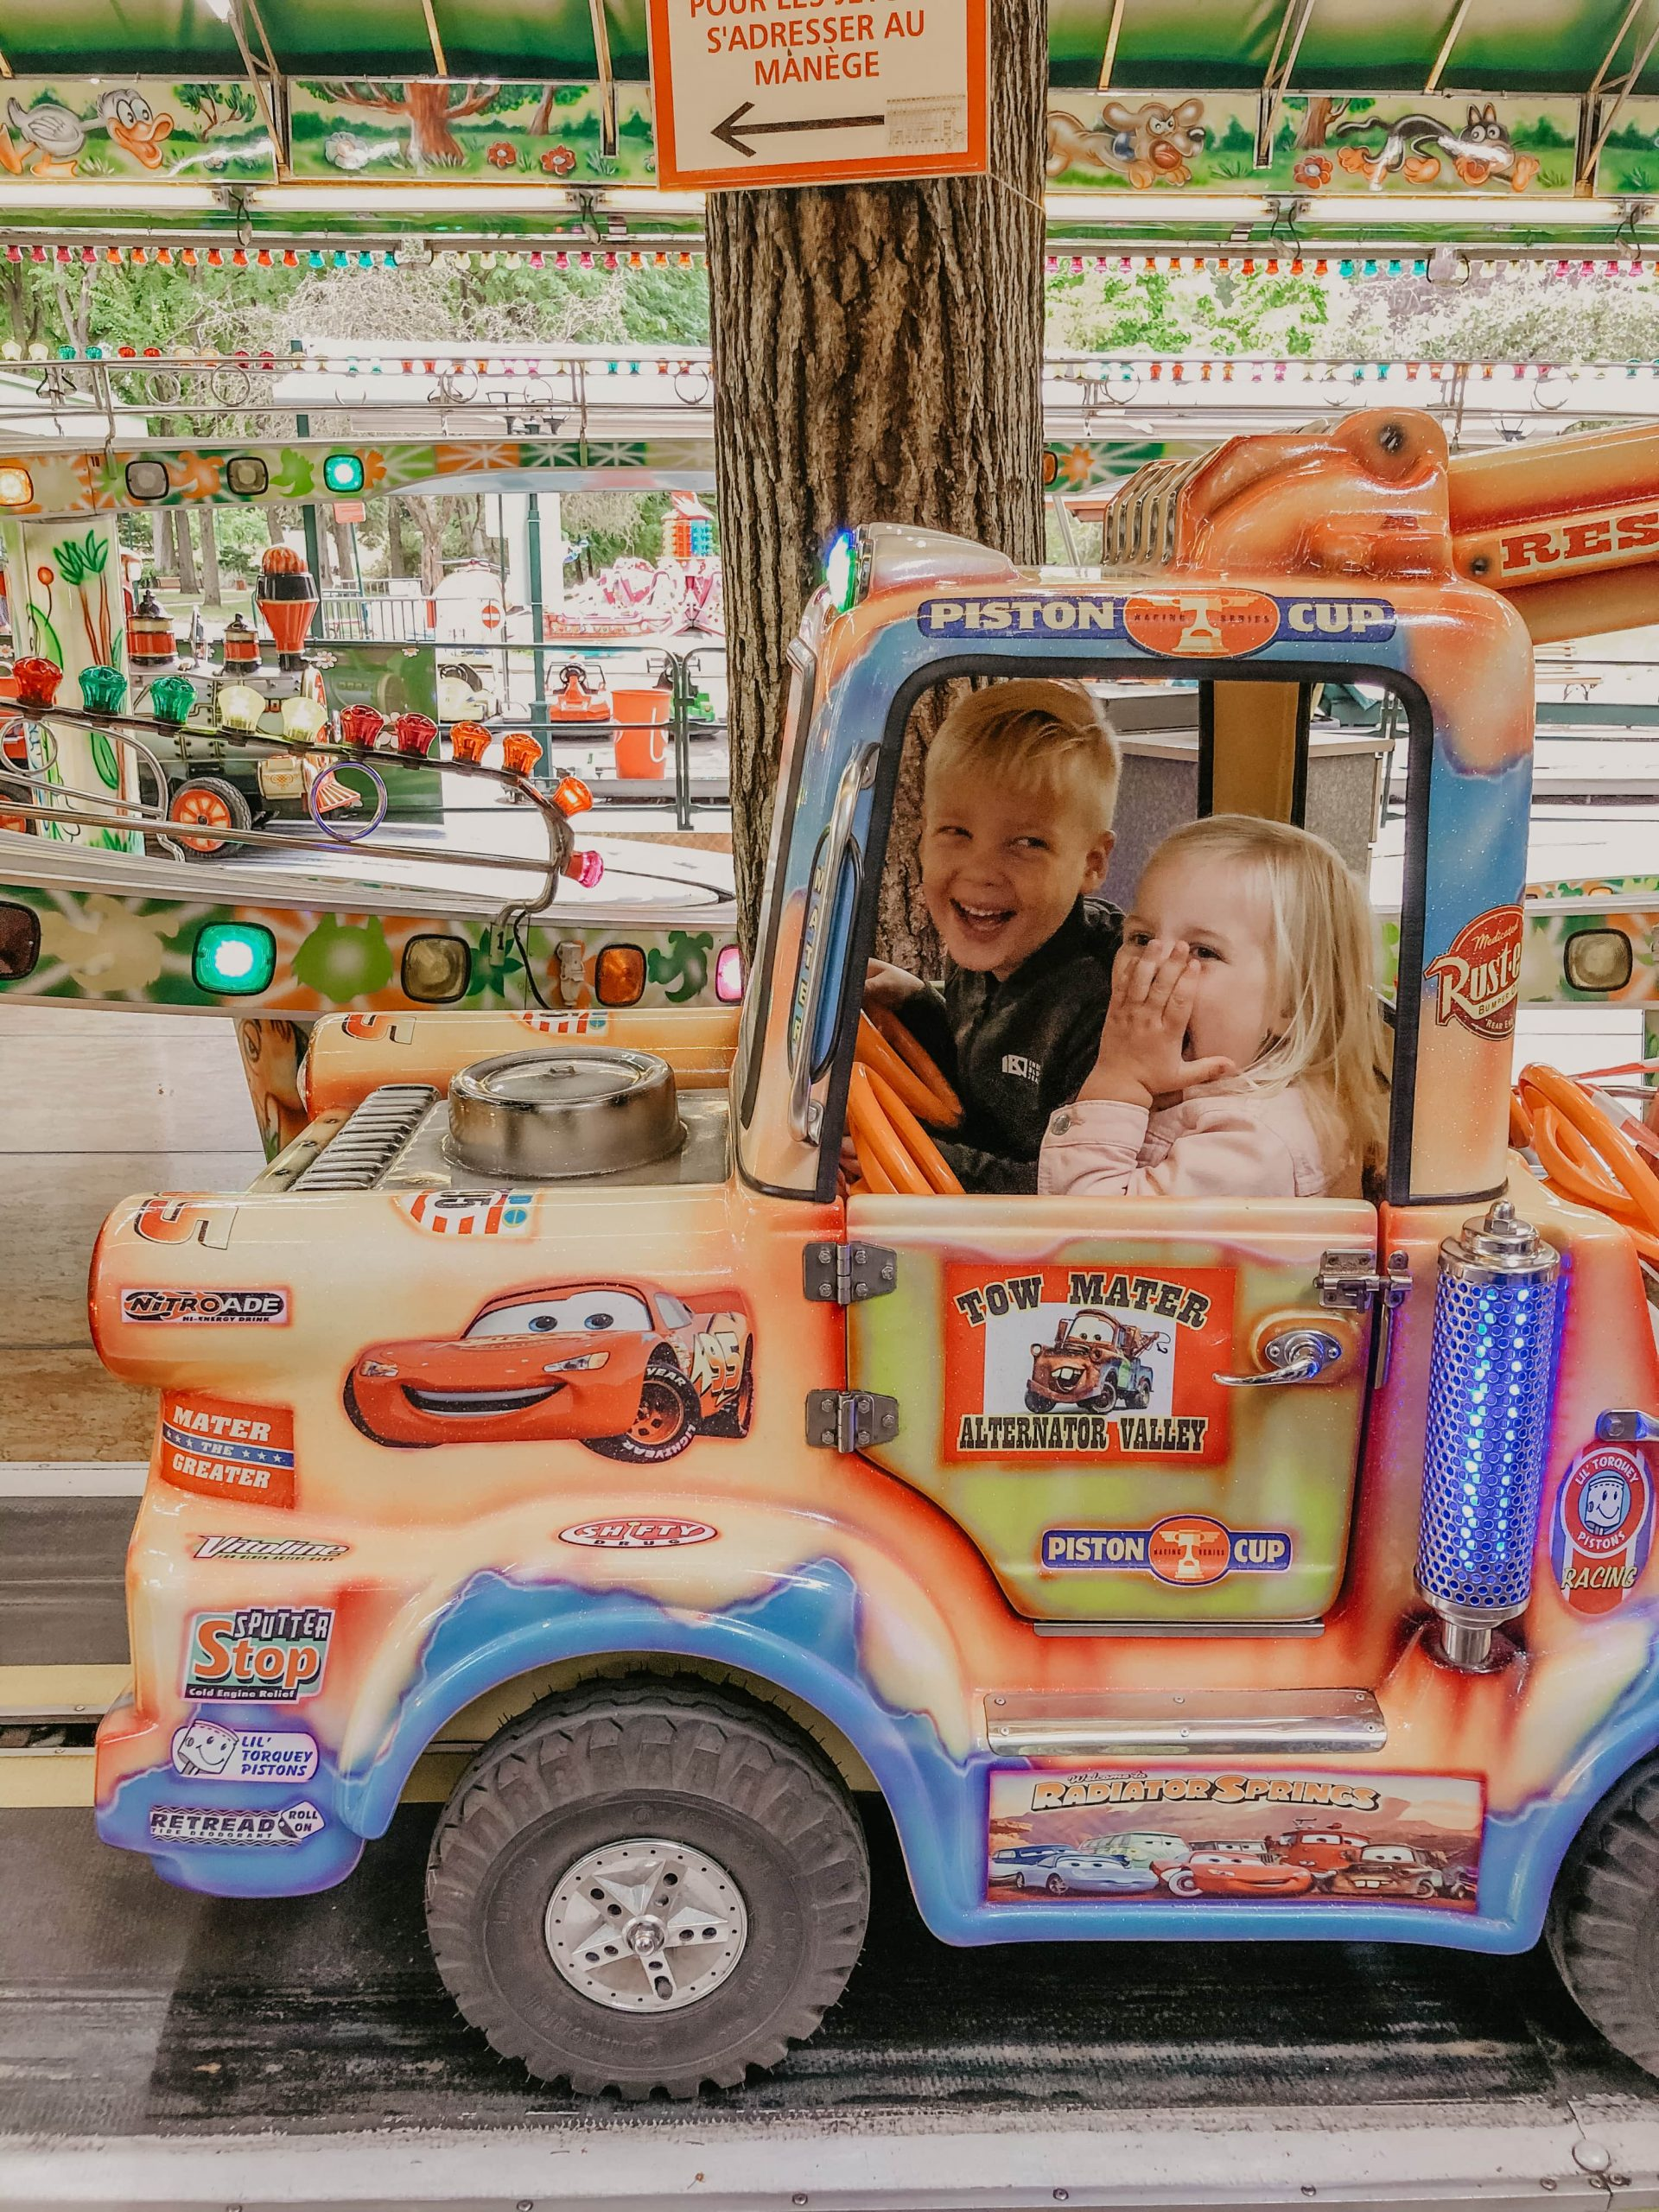 Nancy park kidsproof kermis